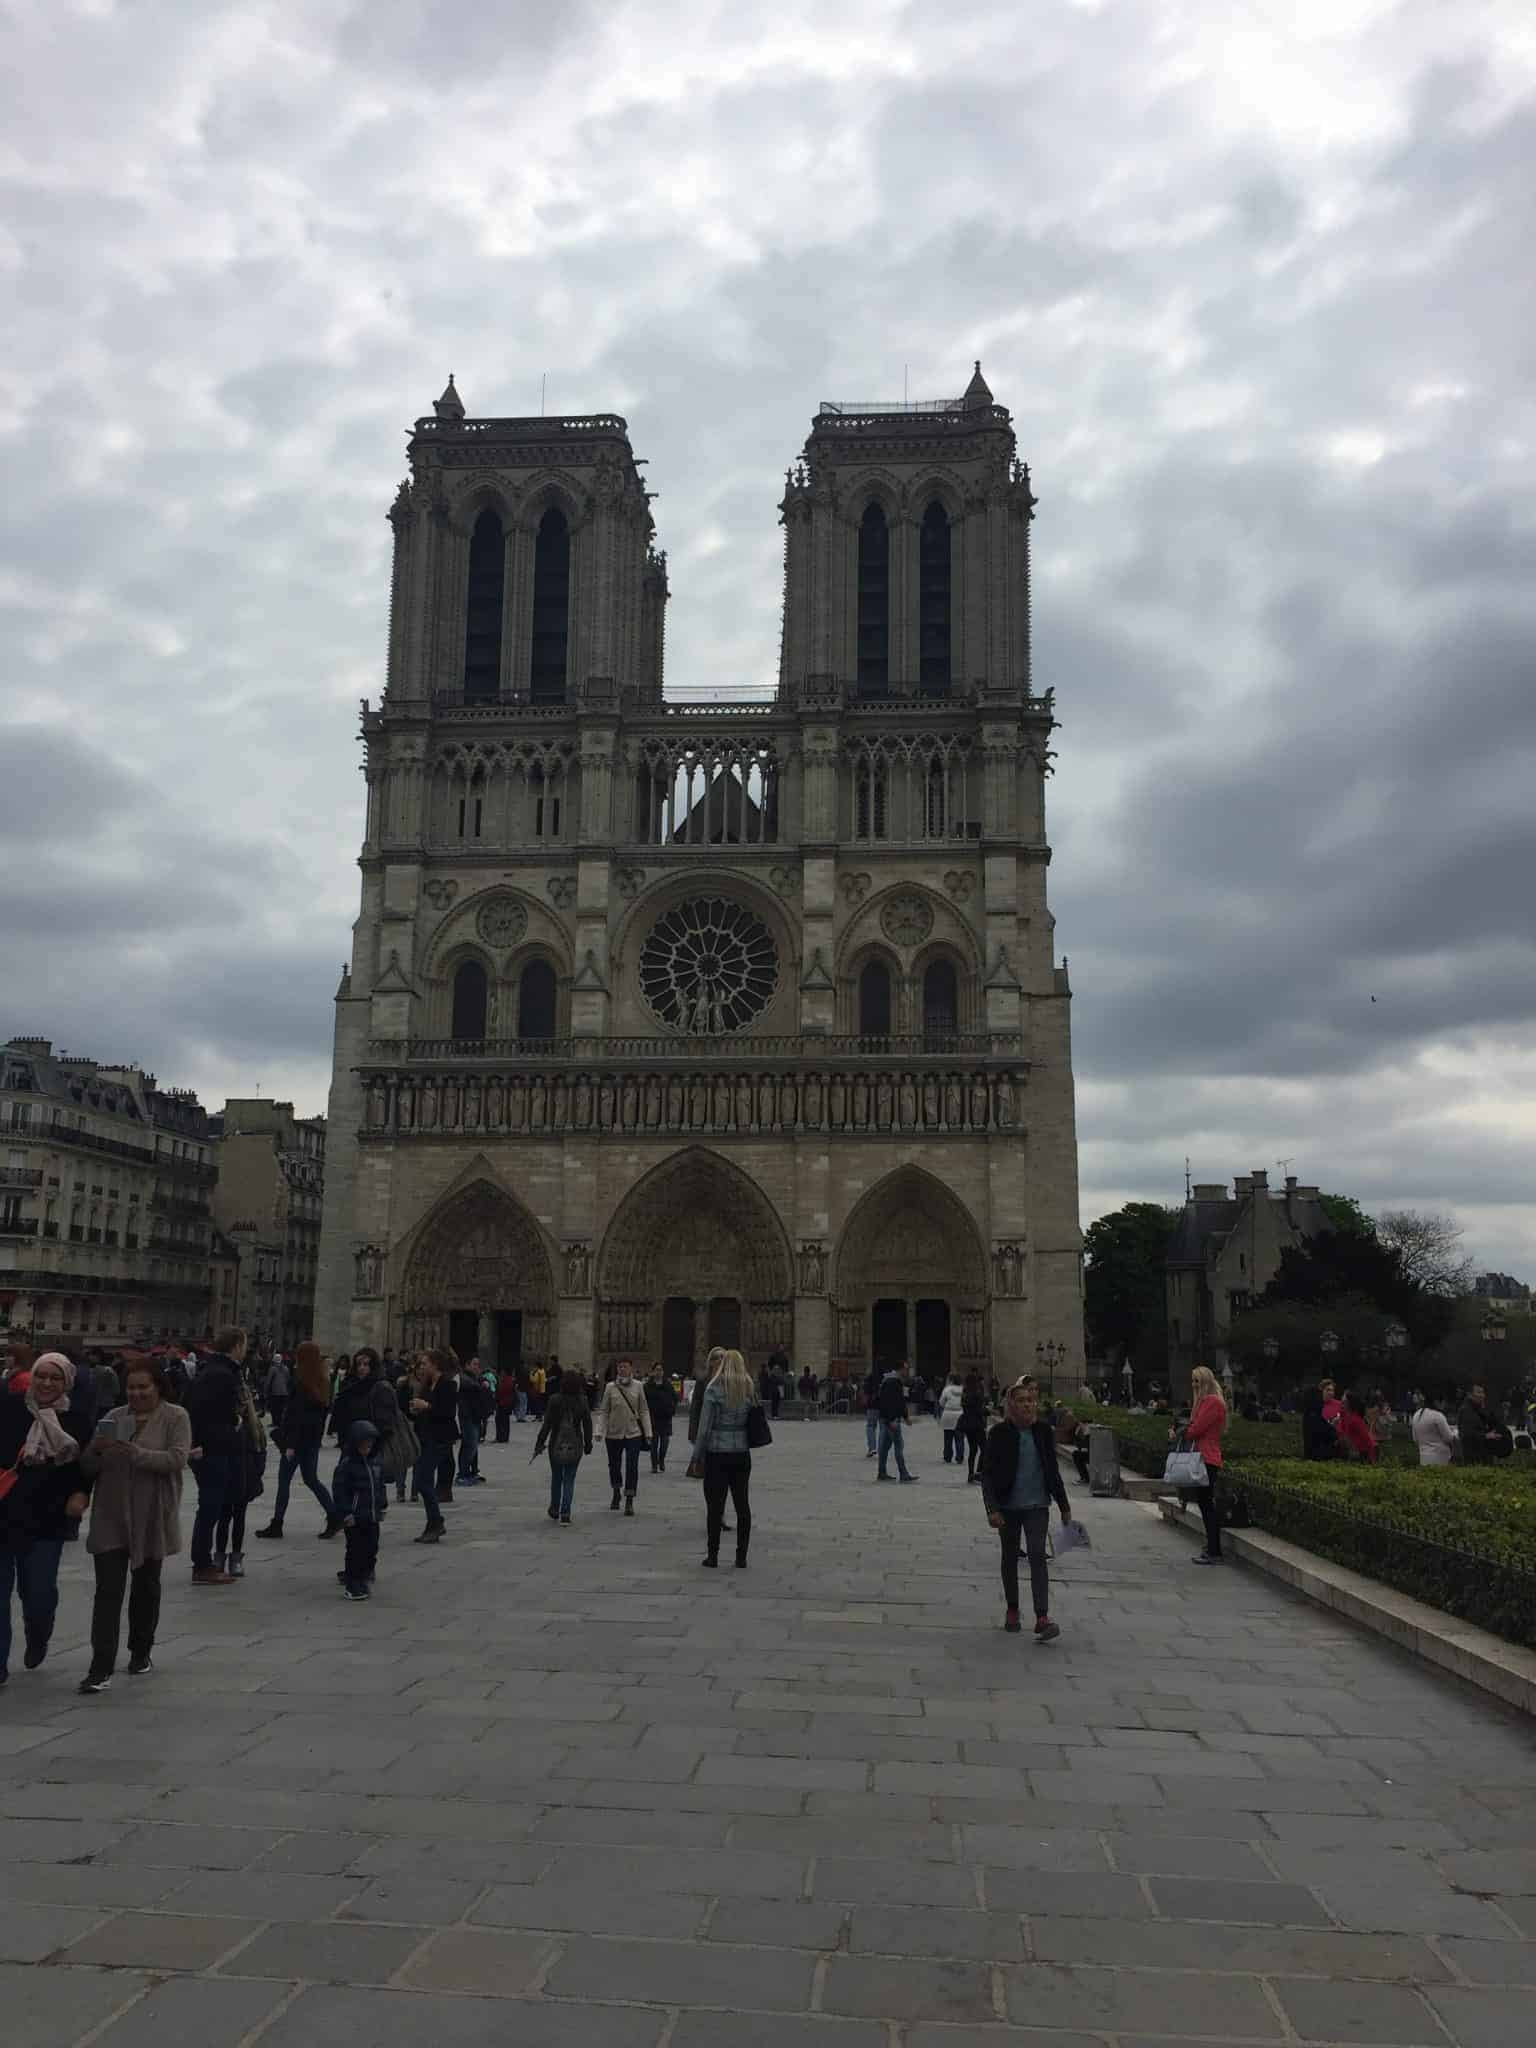 best time to visit paris, best time to travel to Paris, best time of year to visit paris, attractions in Paris, Notre Dame, best time to visit paris france, things to do in Paris, paris 3 days itinerary